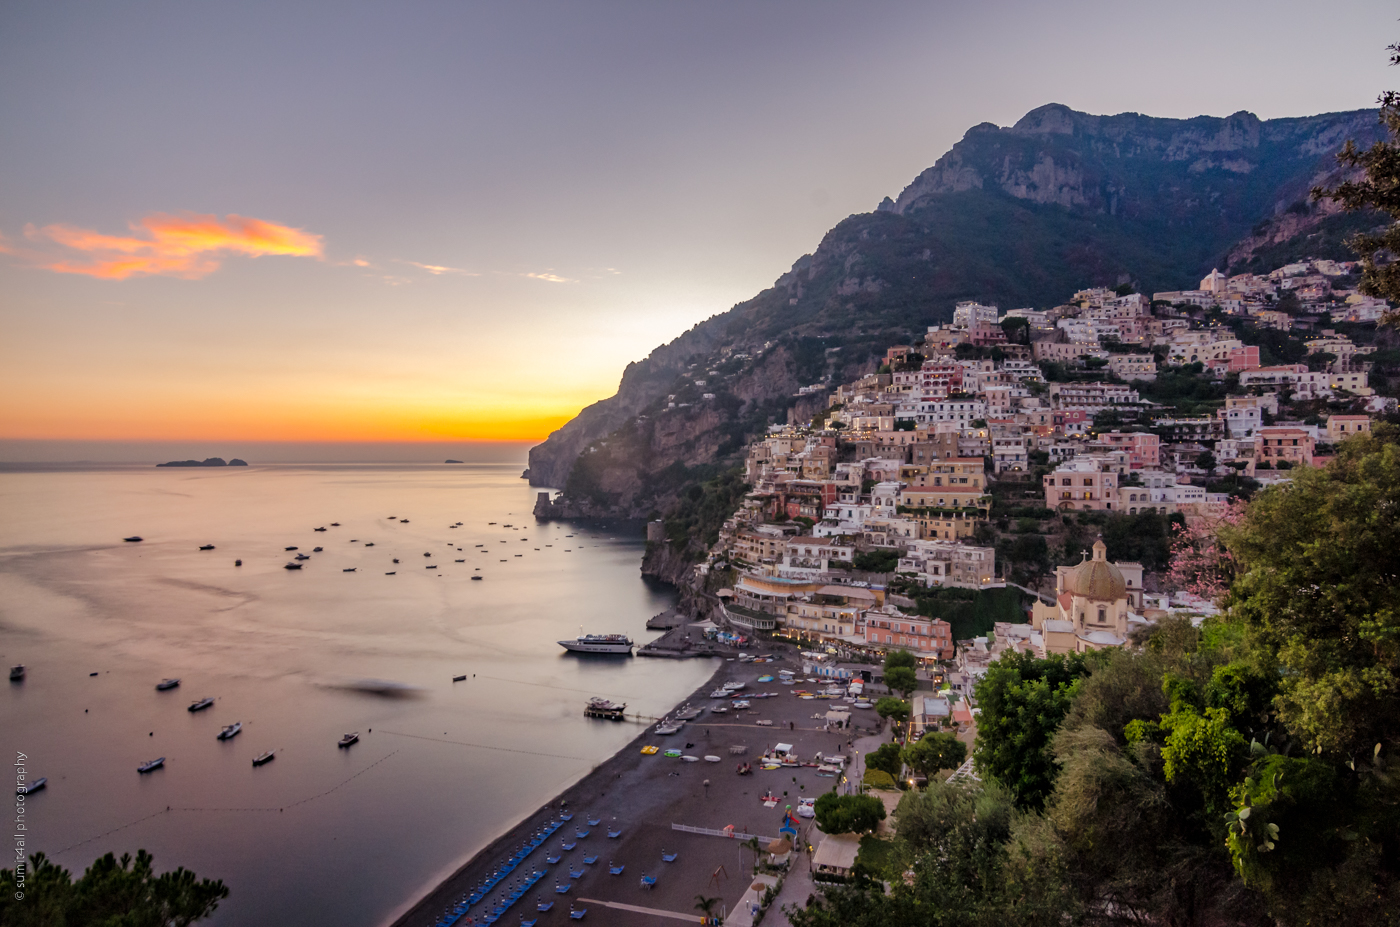 Just after sunset in Positano on the Amalfi Coast, Italy